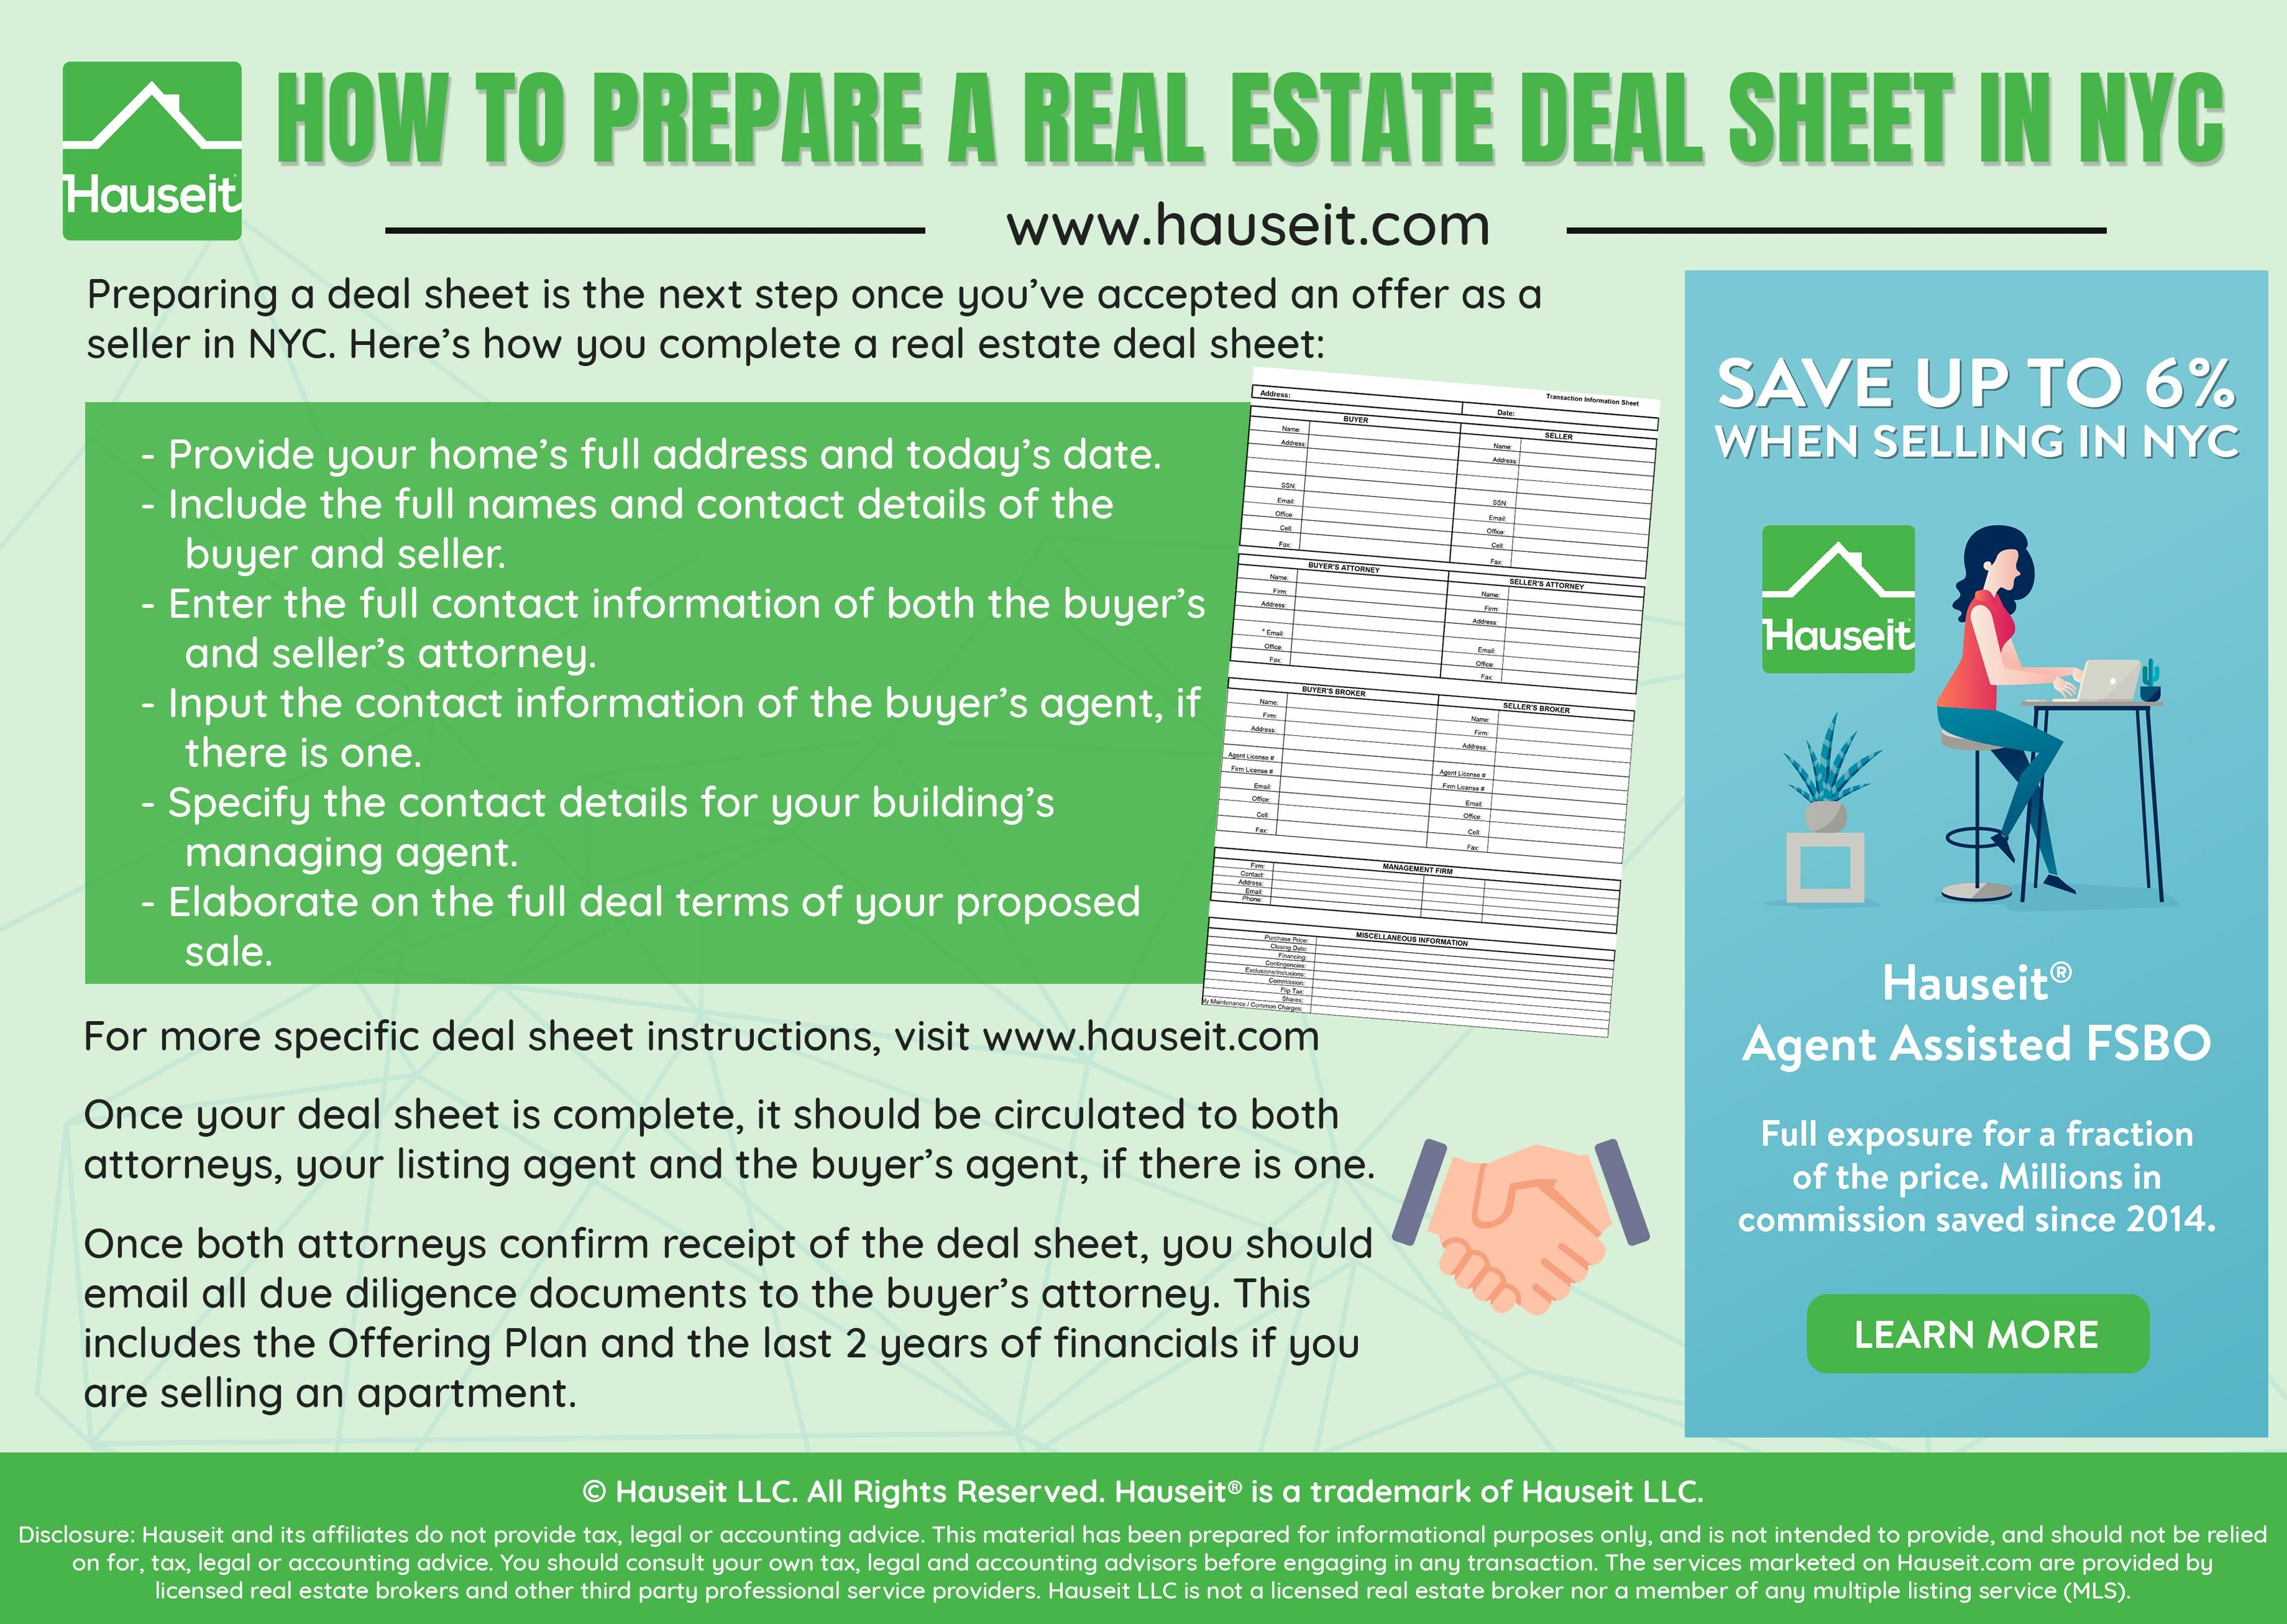 Https Www Hauseit Com Wp Content Uploads 2018 08 How To Prepare A Real Estate Deal Sheet In Nyc Jpg Real Estate Nyc Buying A Condo